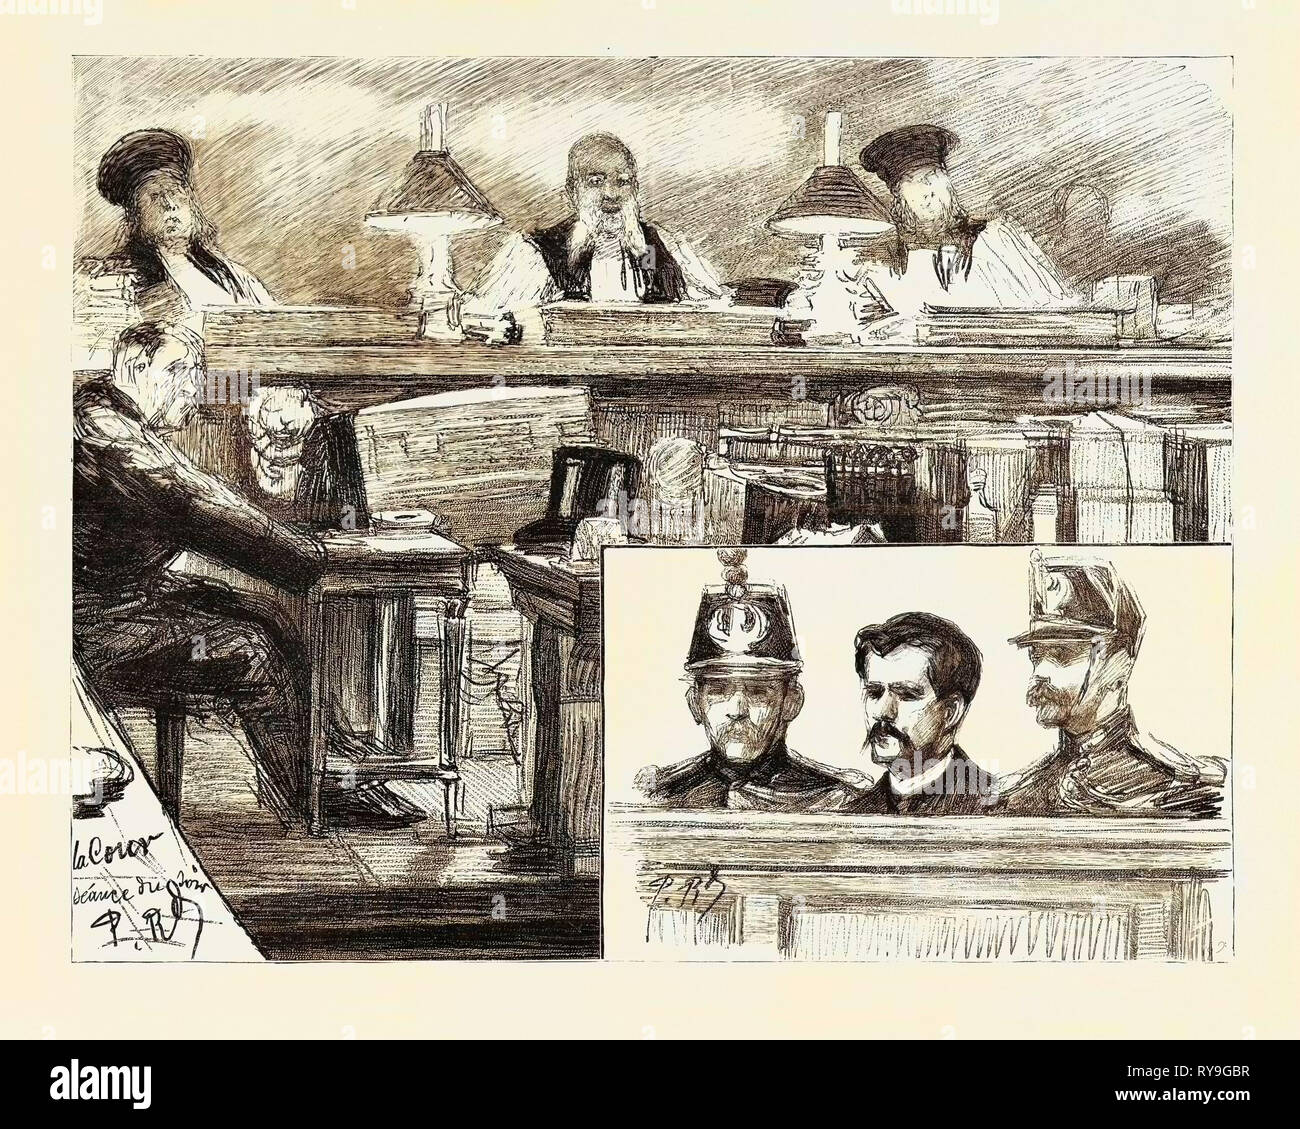 The Anarchists in Paris, France, the Trial of Ravachol at the Palais De Justice: M. Gues, the Presiding Judge, on the Bench, Ravachol Sitting Between Two Guards the Trial of Ravachol and His Accomplices Was Prolonged by Gaslight Into the Night, and the Judge's Summing-Up Was Not Concluded Until Past One O'Clock in the Morning., 1892 Engraving - Stock Image